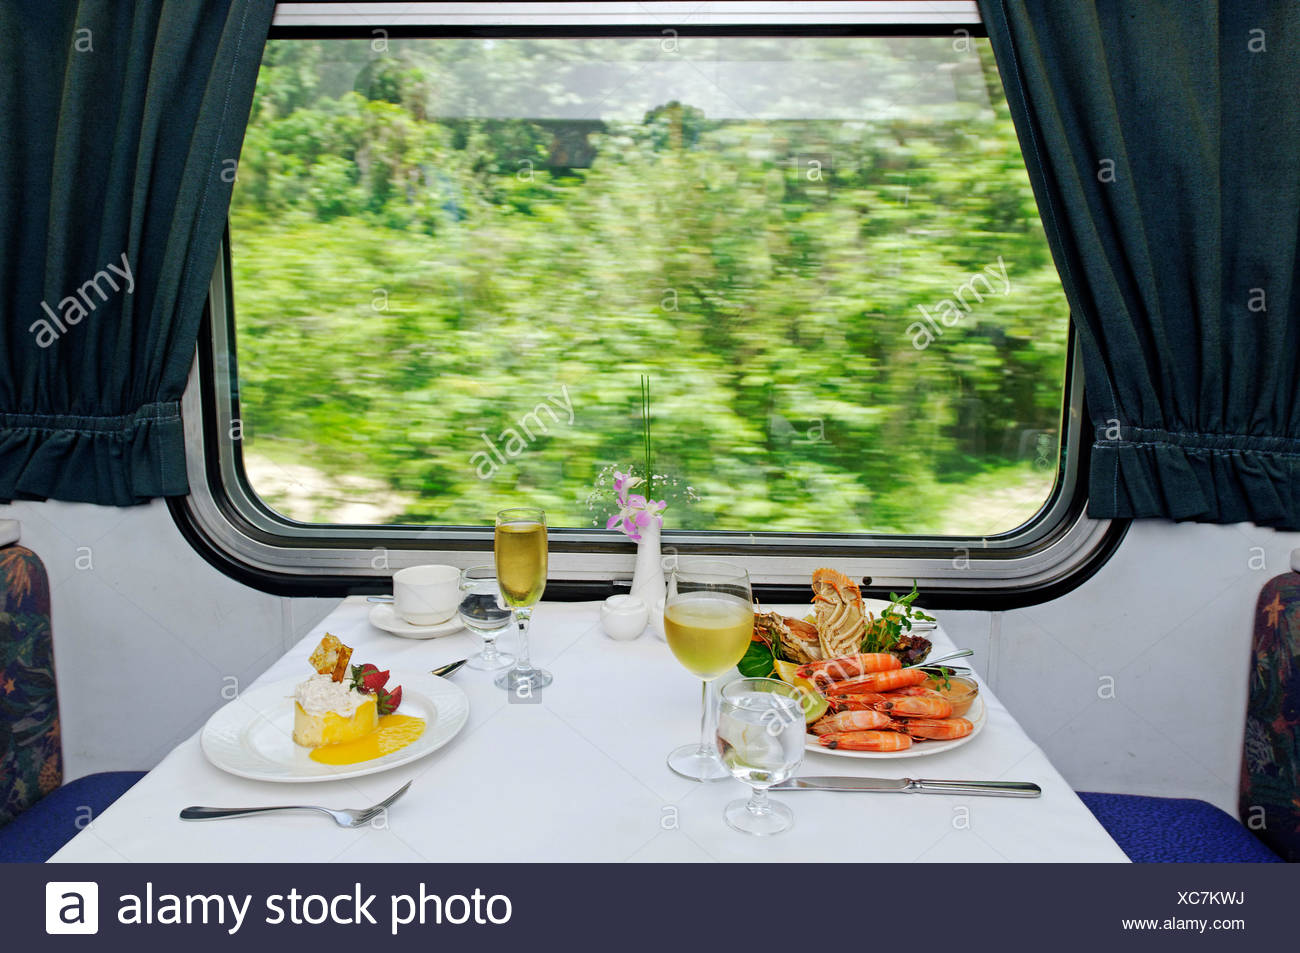 Laid table in the restaurant car of the Sunlander train, Queensland, Australia - Stock Image